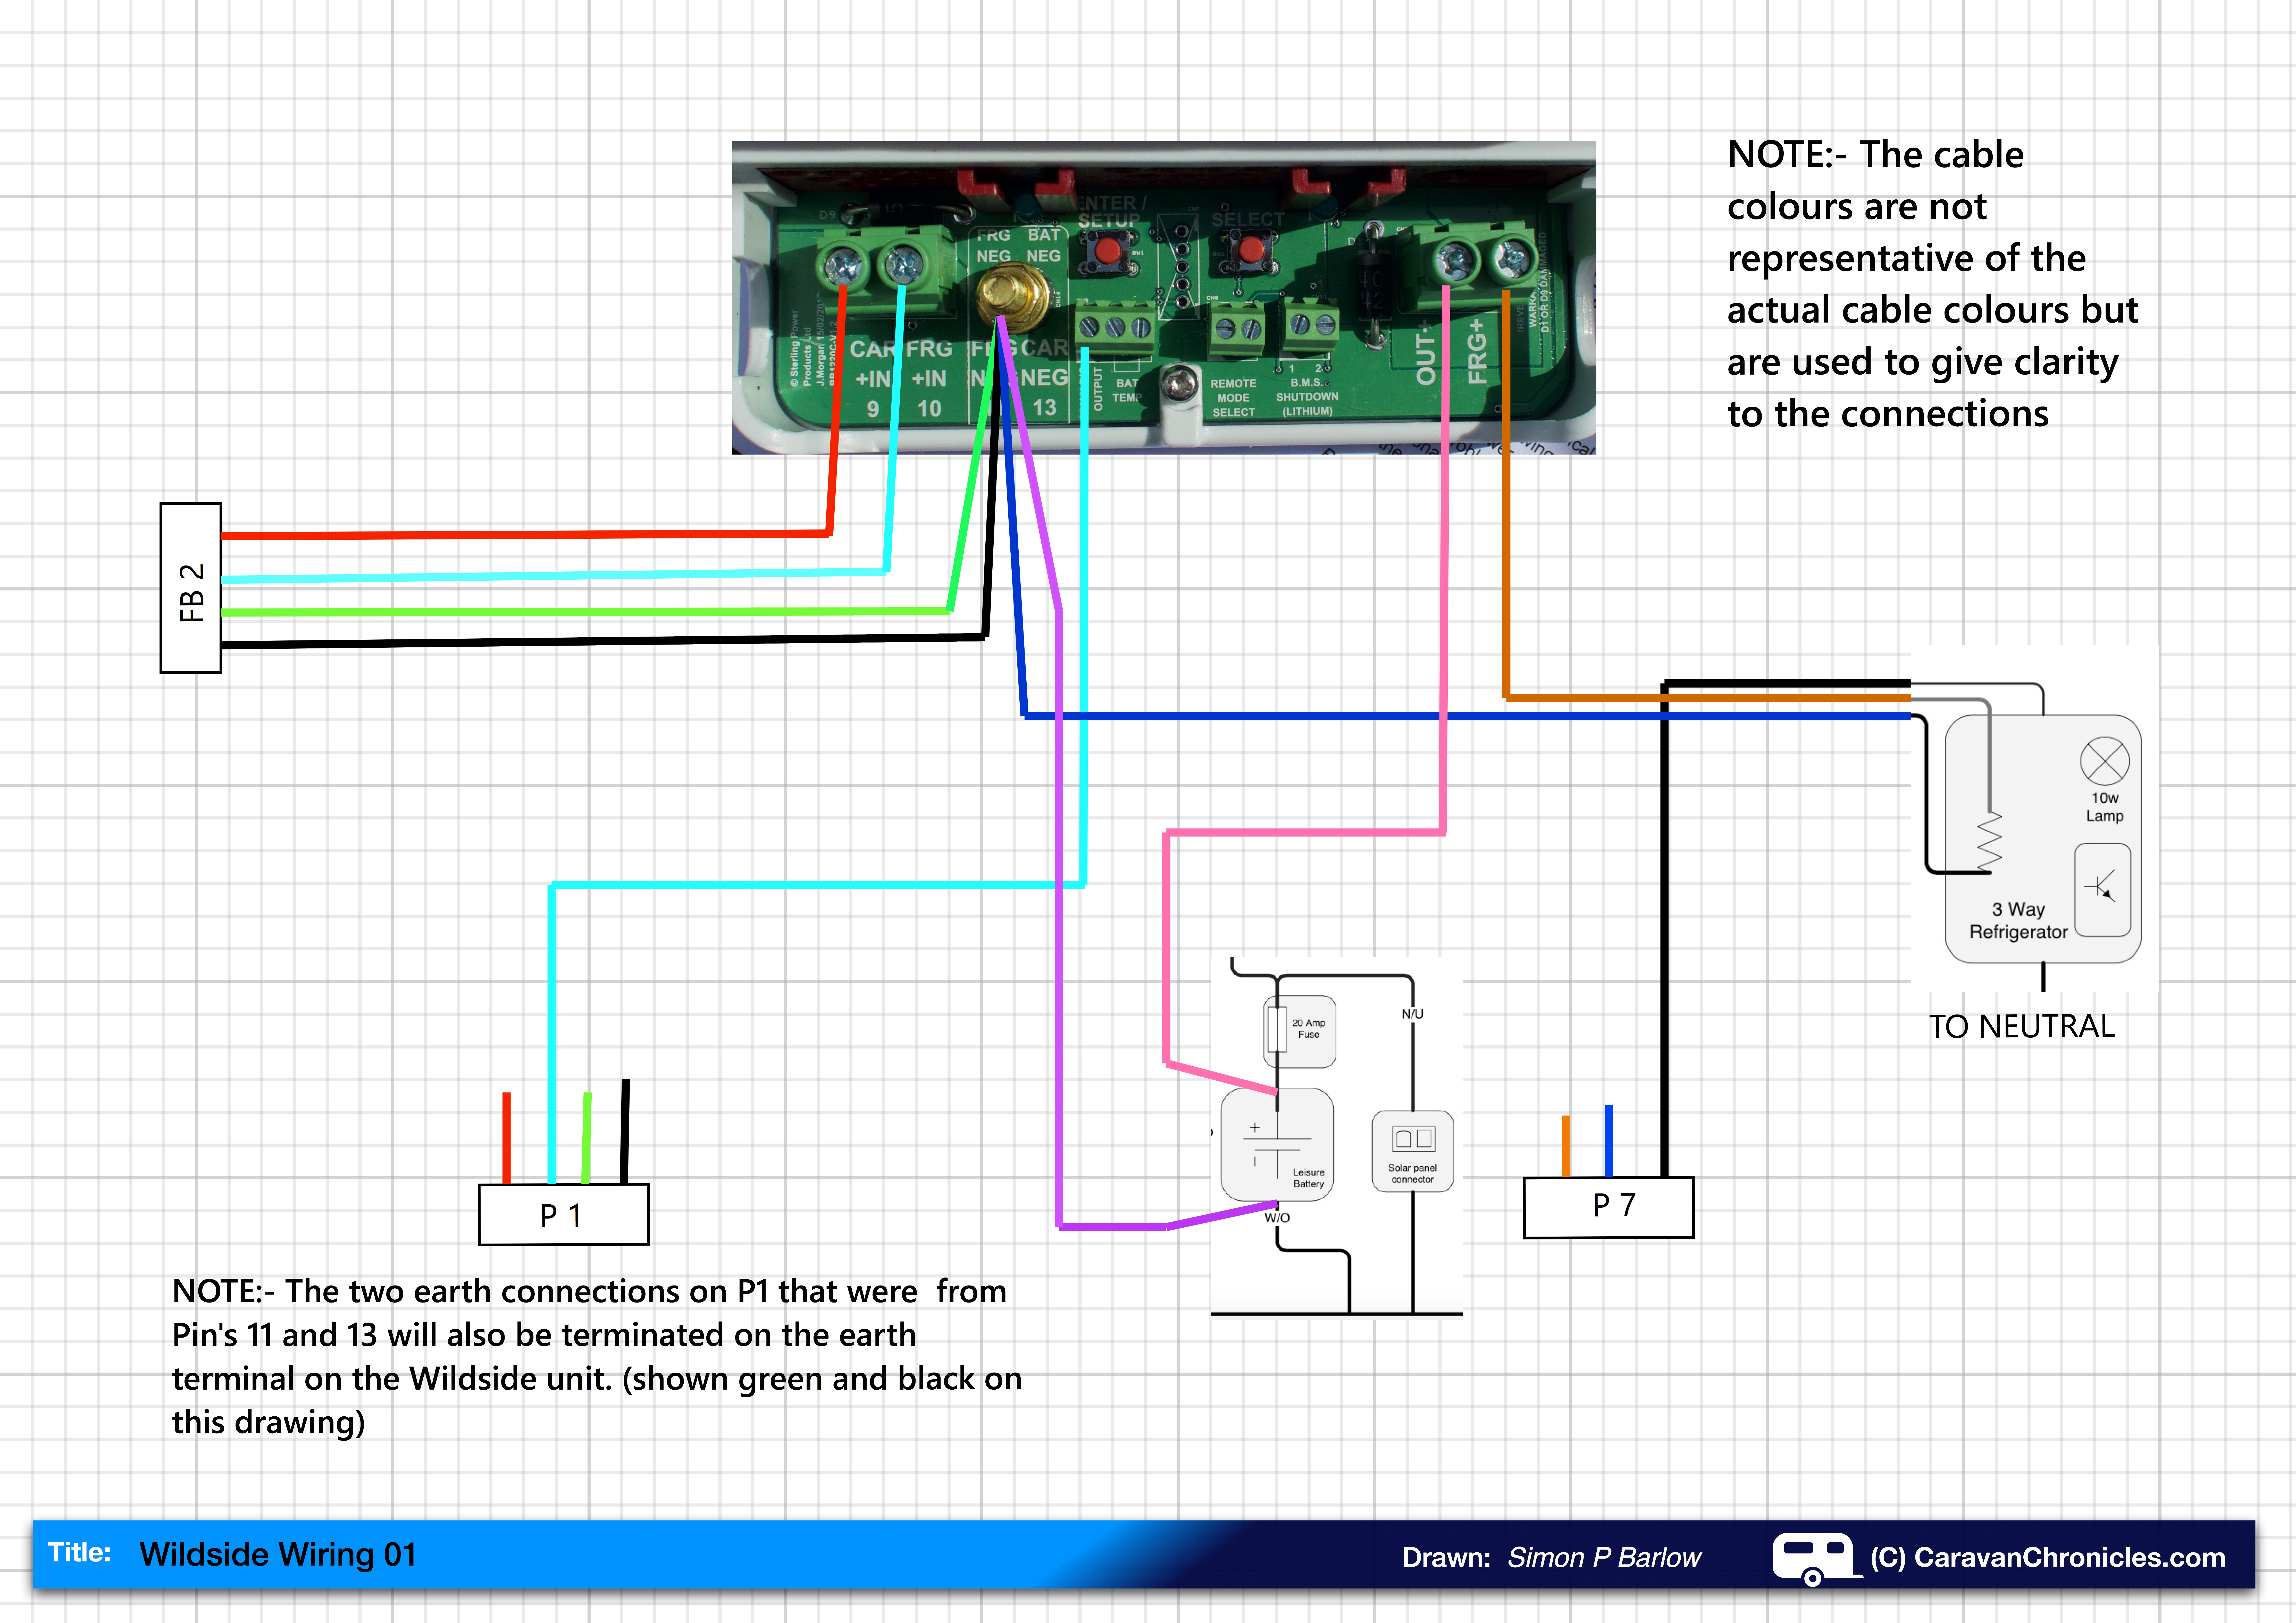 wildside wiring 01?w=529 getting all charged up part 2 caravan chronicles alko atc wiring diagram at bayanpartner.co